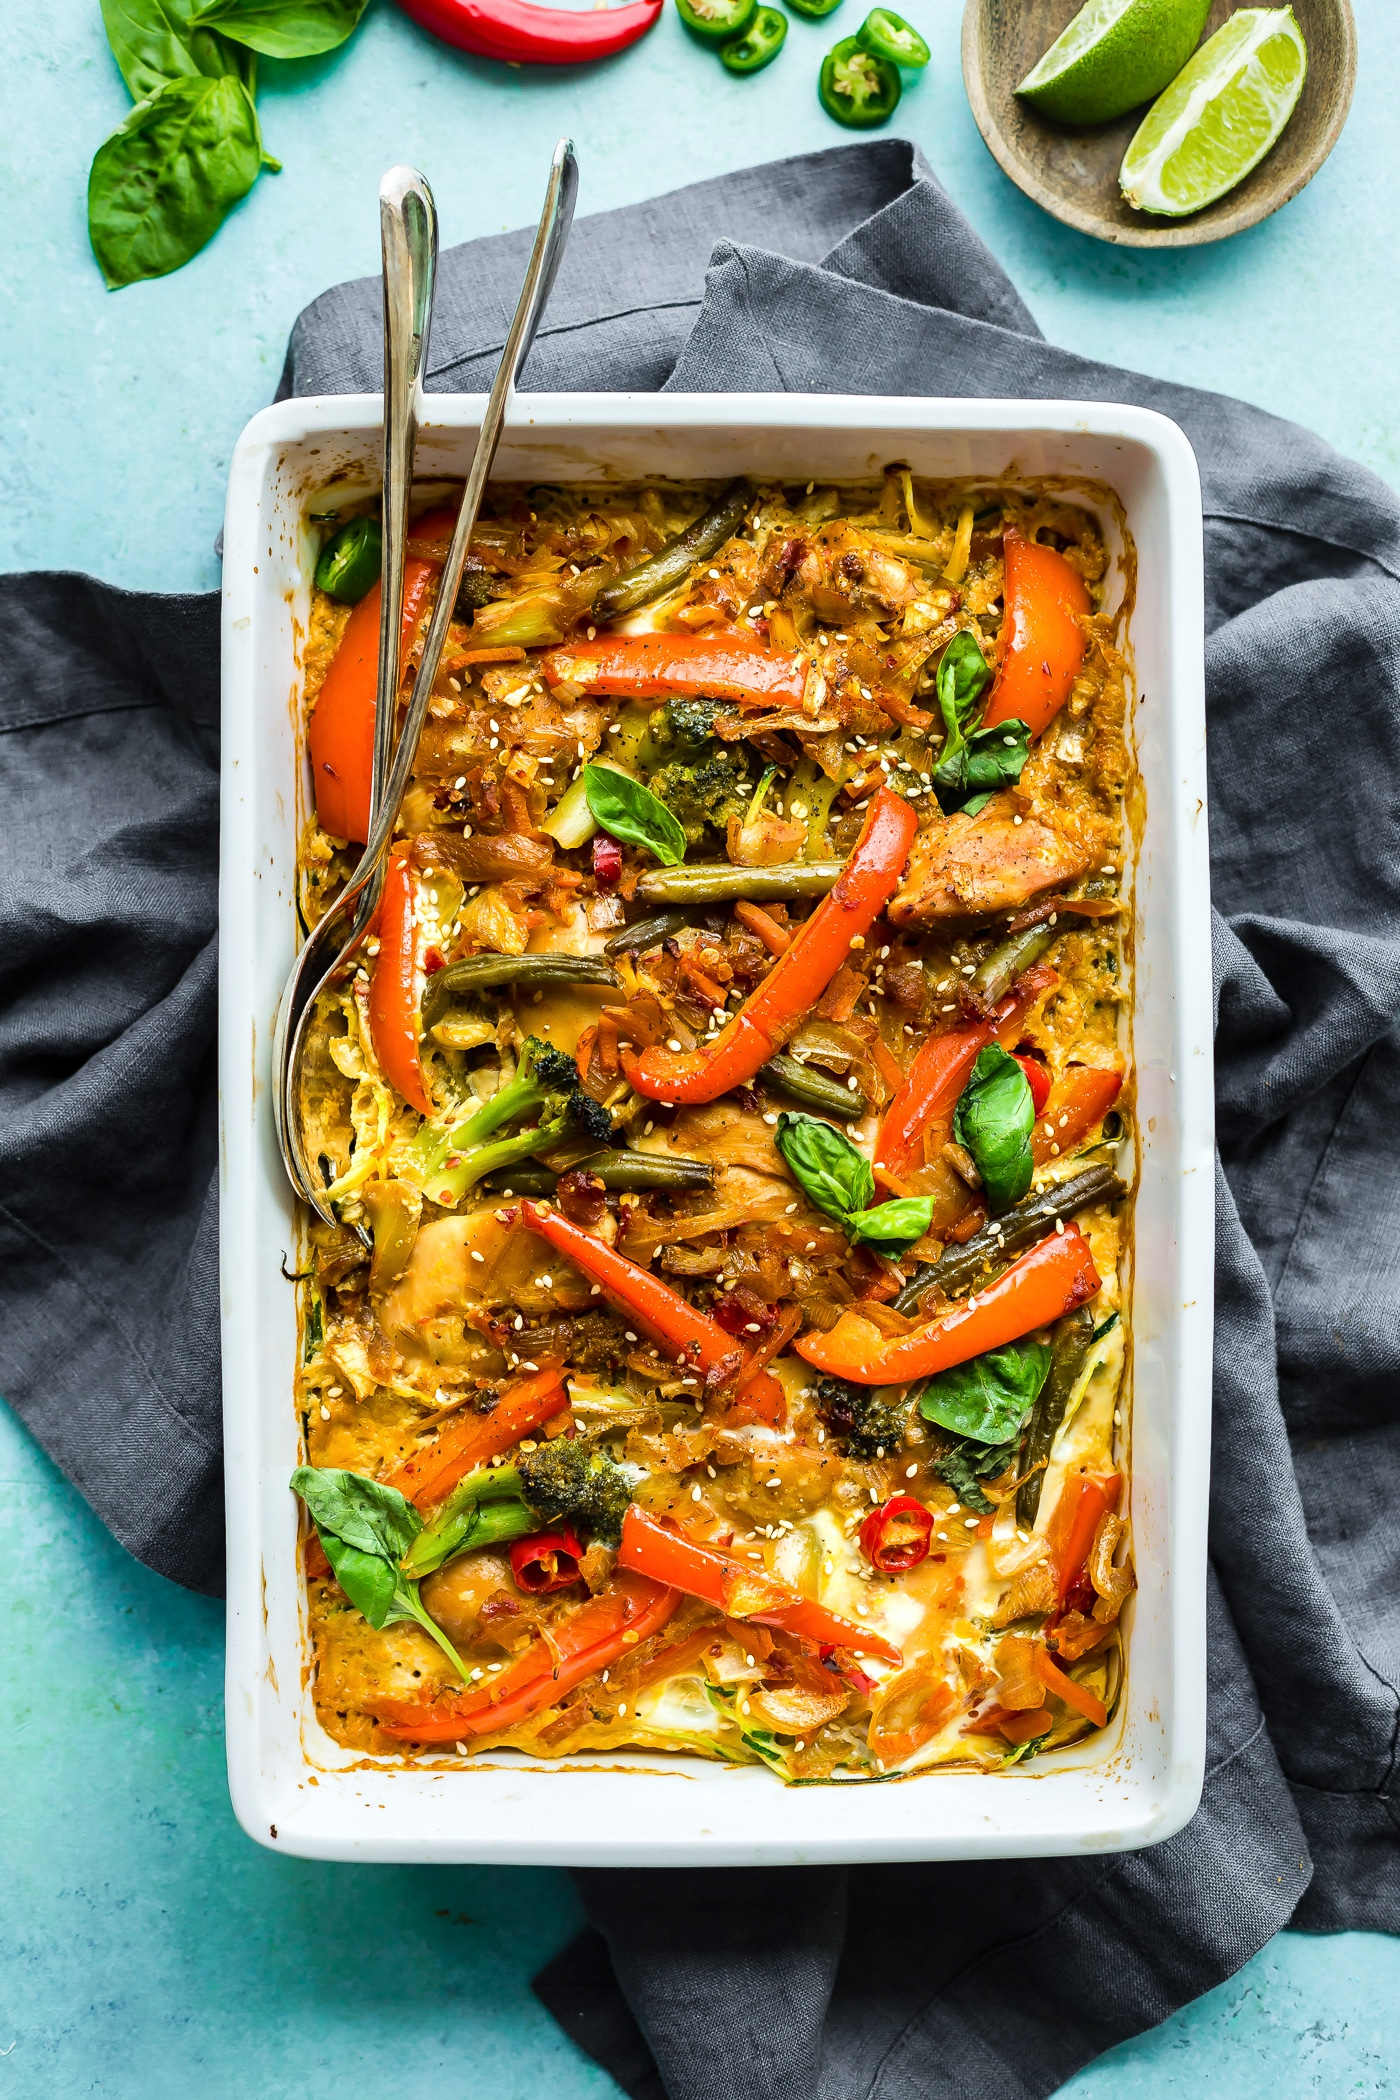 This Drunken Chicken Zoodle Casserole takes a spin on the original Pad kee mao Asian stir fry and puts in casserole form. A Paleo Noodle Zoodle Casserole with tons of flavor, Thai spices, and simple healthy ingredients! Light and delicious.